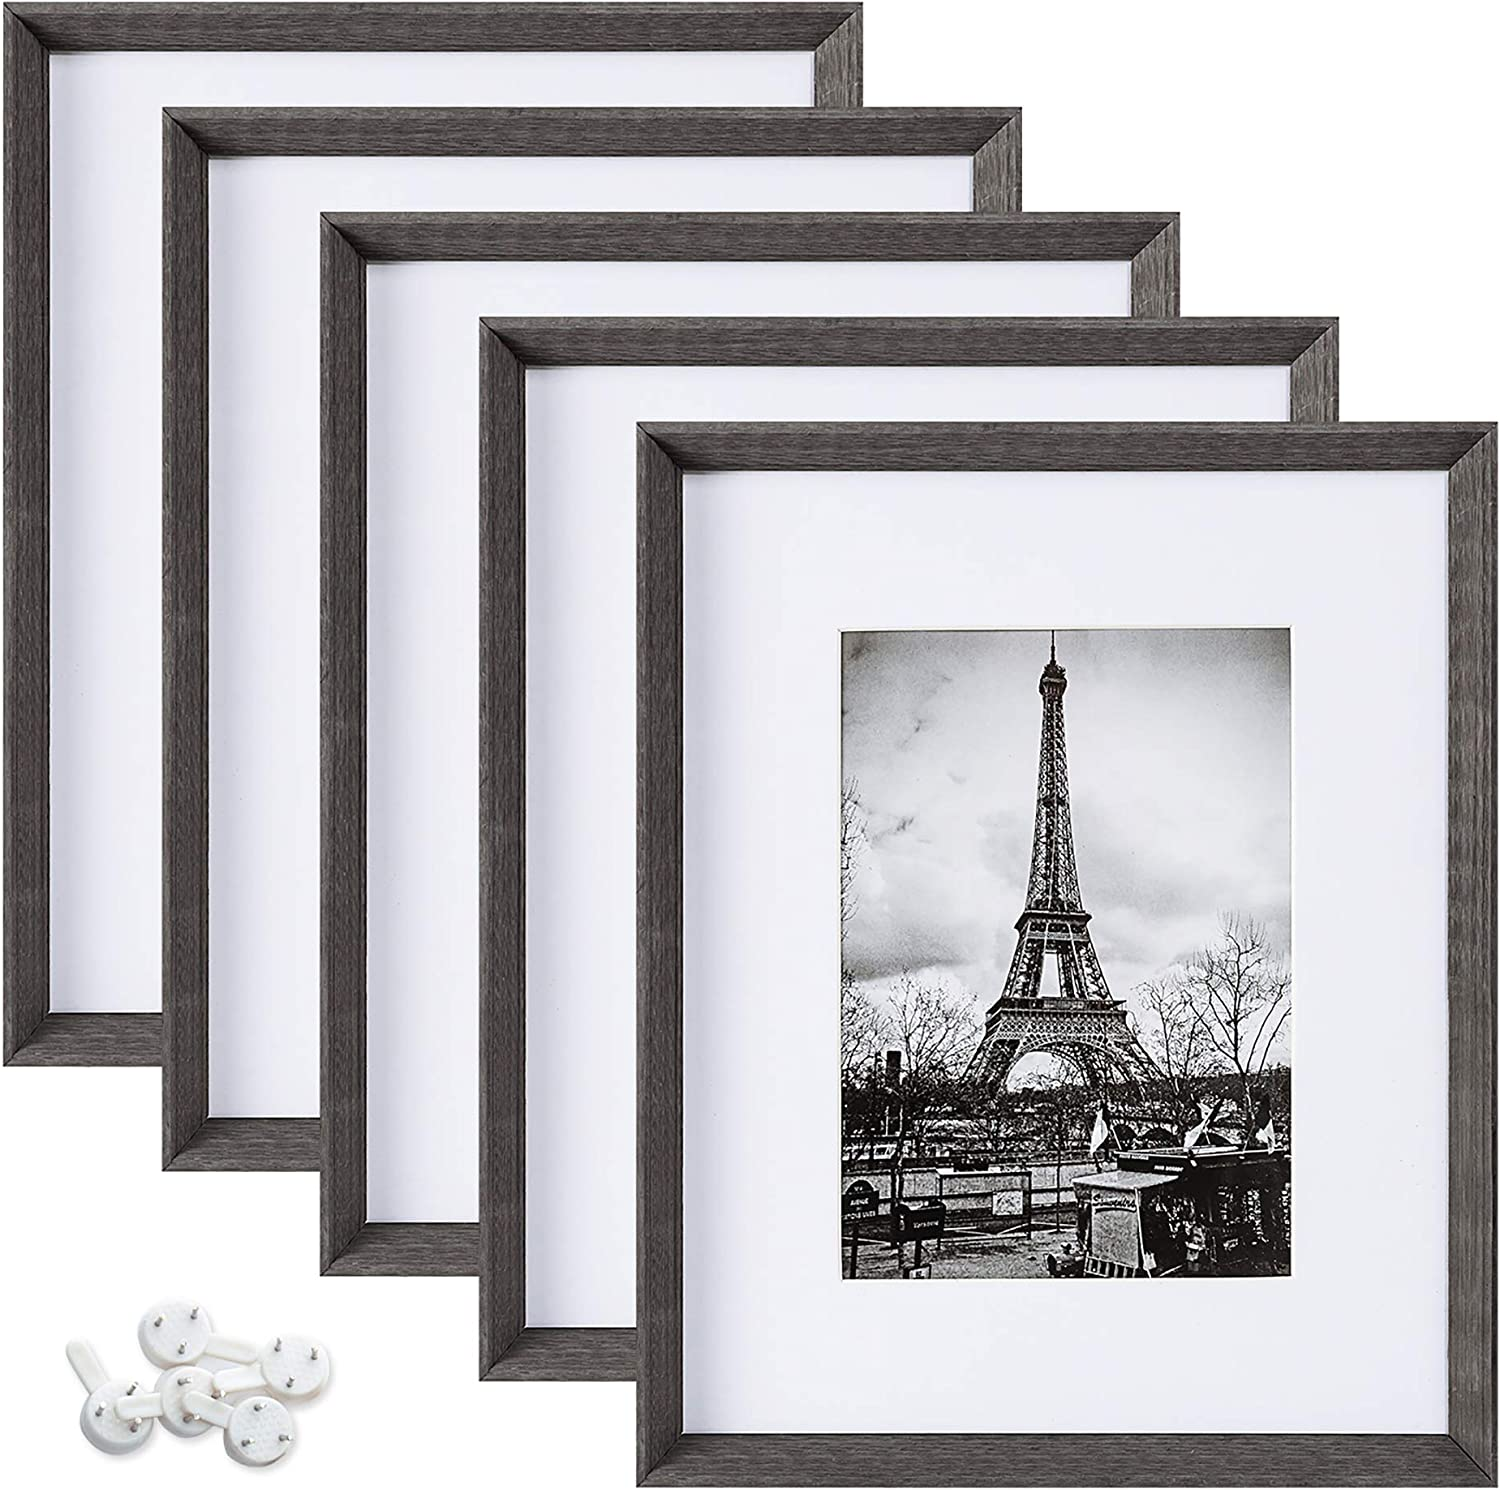 upsimples 8x10 Picture Frames with High Definition Glass, Display Pictures 5x7 with Mat or 8x10 Without Mat, Rustic Photo Frames for Wall or Tabletop Display, Set of 5, Dark Grey -